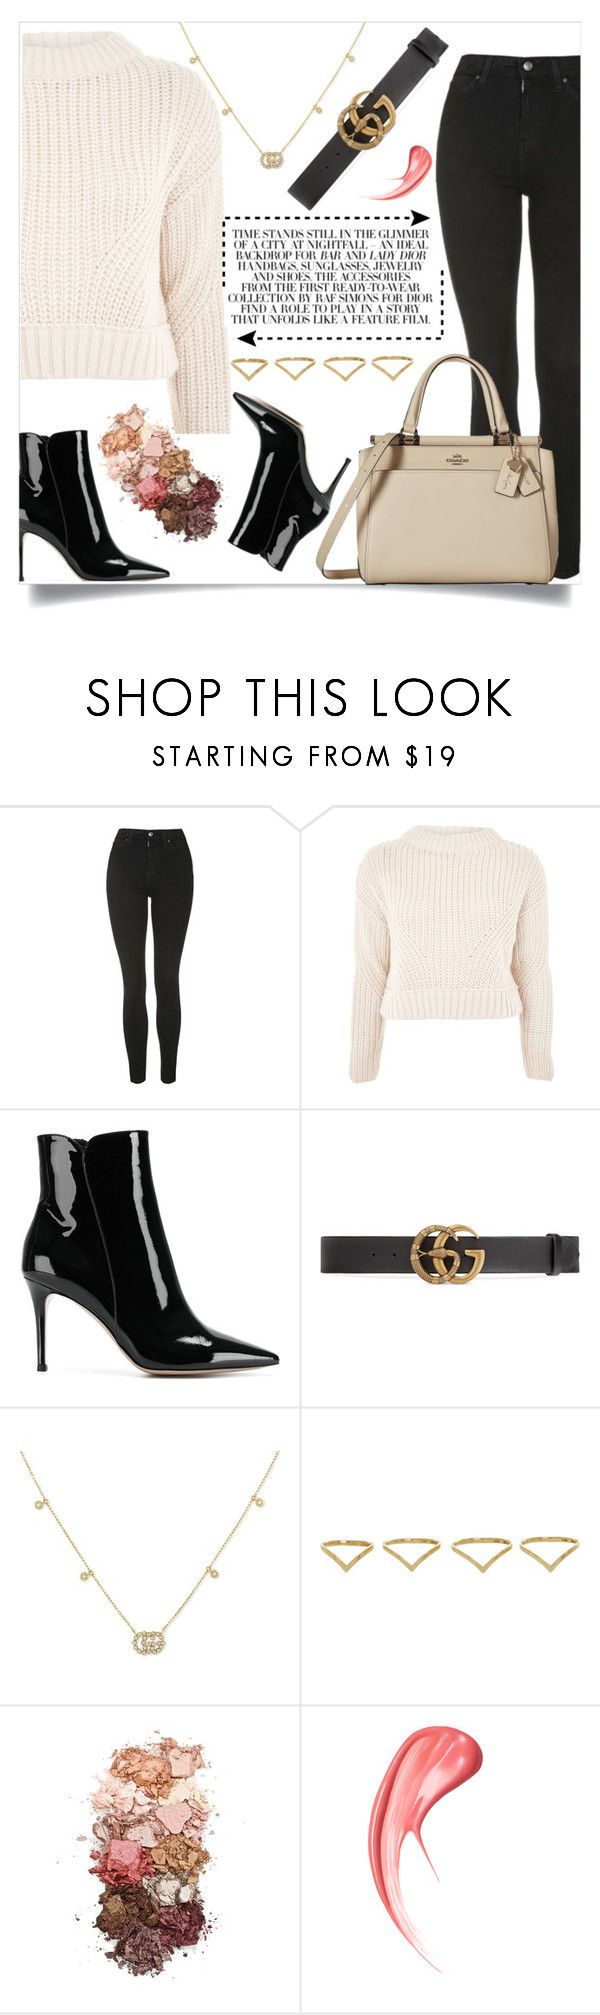 """""""Interior Nights ✨"""" by wondrousbeing ❤ liked on Polyvore featuring Topshop, Gianvito Rossi, Gucci, Ana Khouri, Sigma, Coach, outfit, chic, fabulous and casualoutfit"""